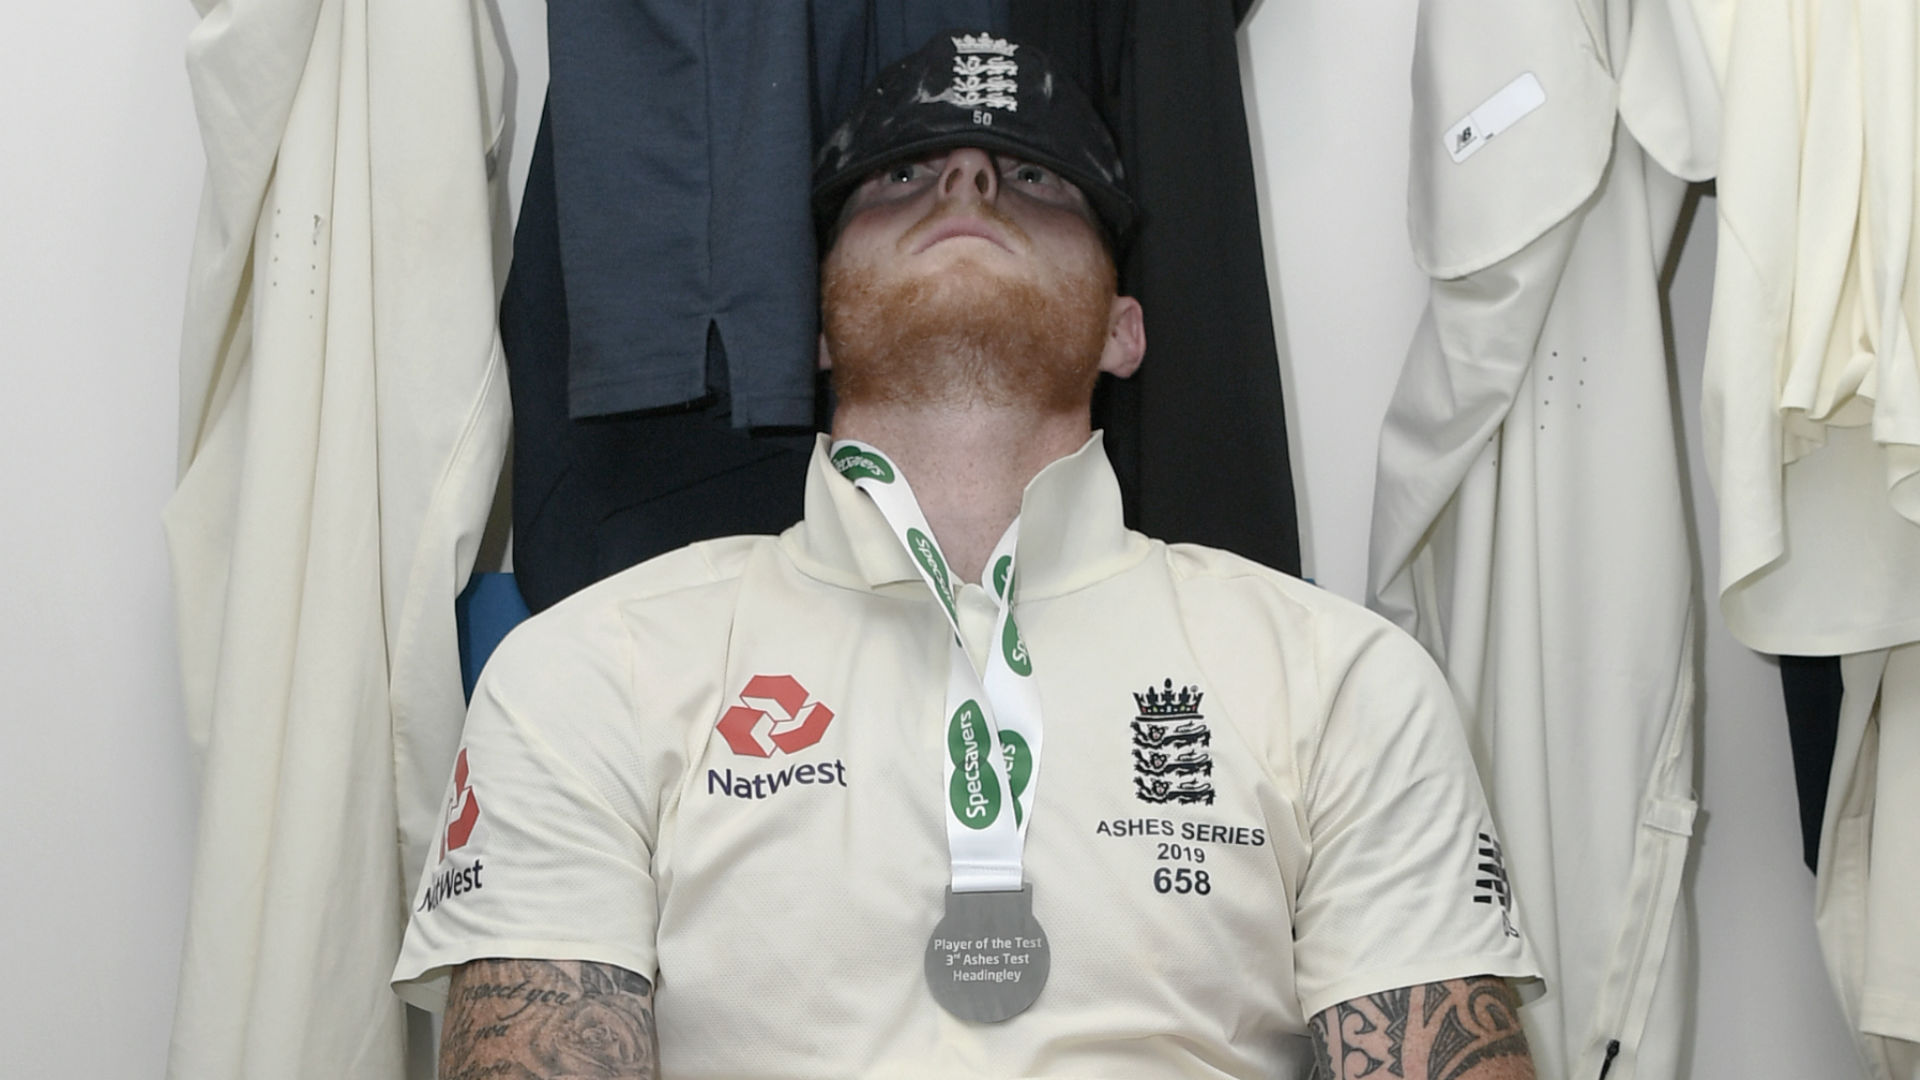 Ashes 2019: Stokes is Headingley's headline act as Test cricket delivers once more